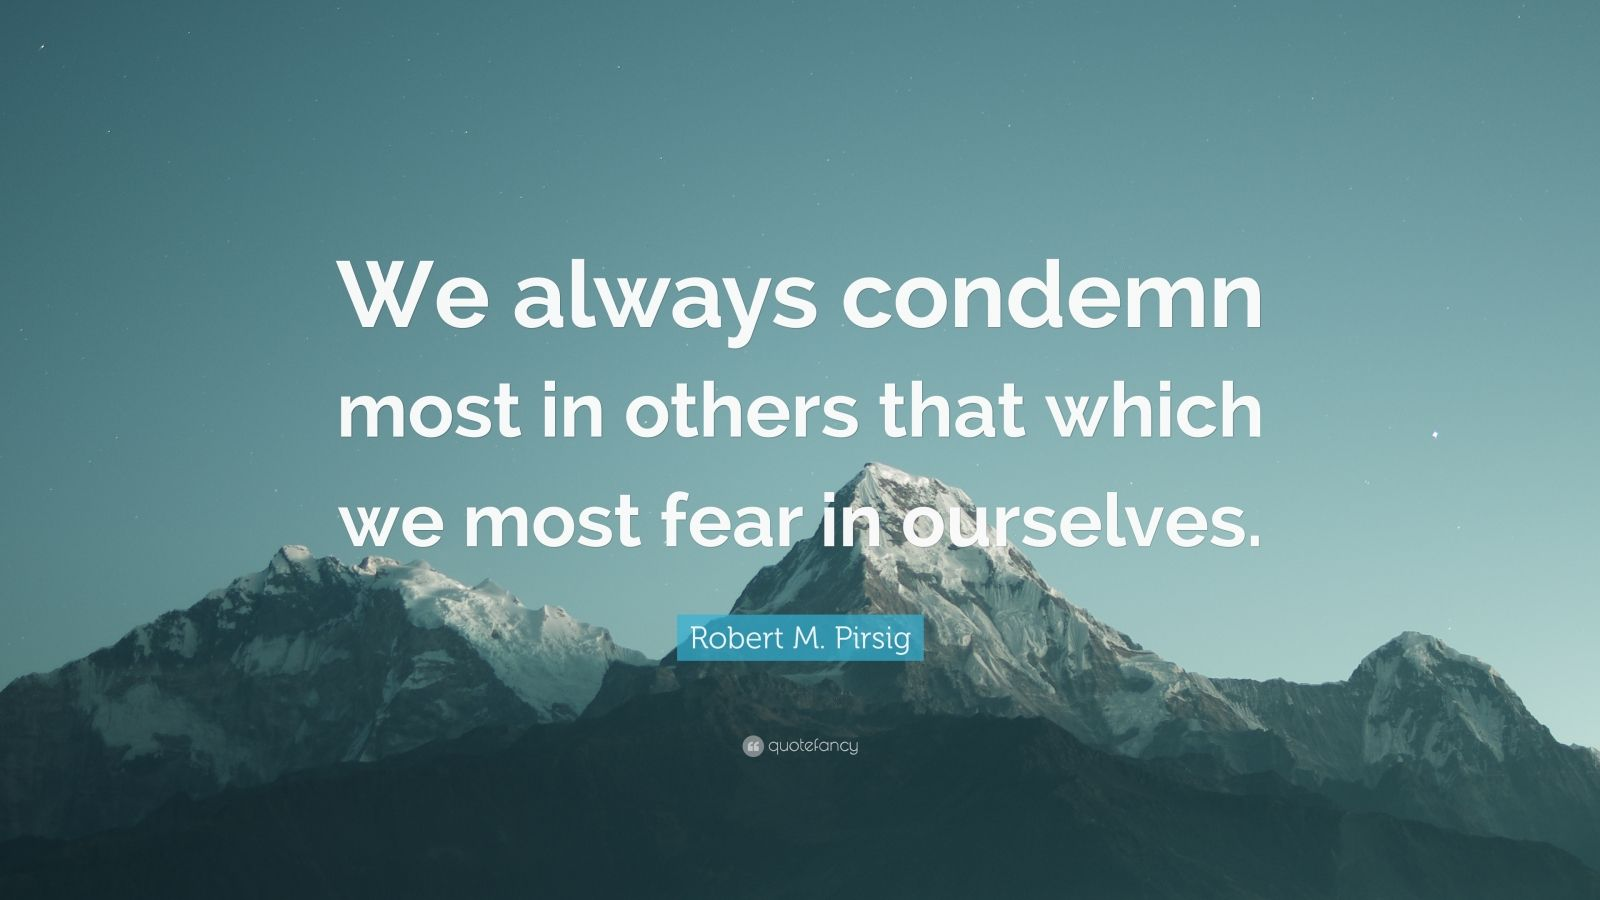 """Robert M. Pirsig Quote: """"We always condemn most in others that which we most fear in ourselves."""""""